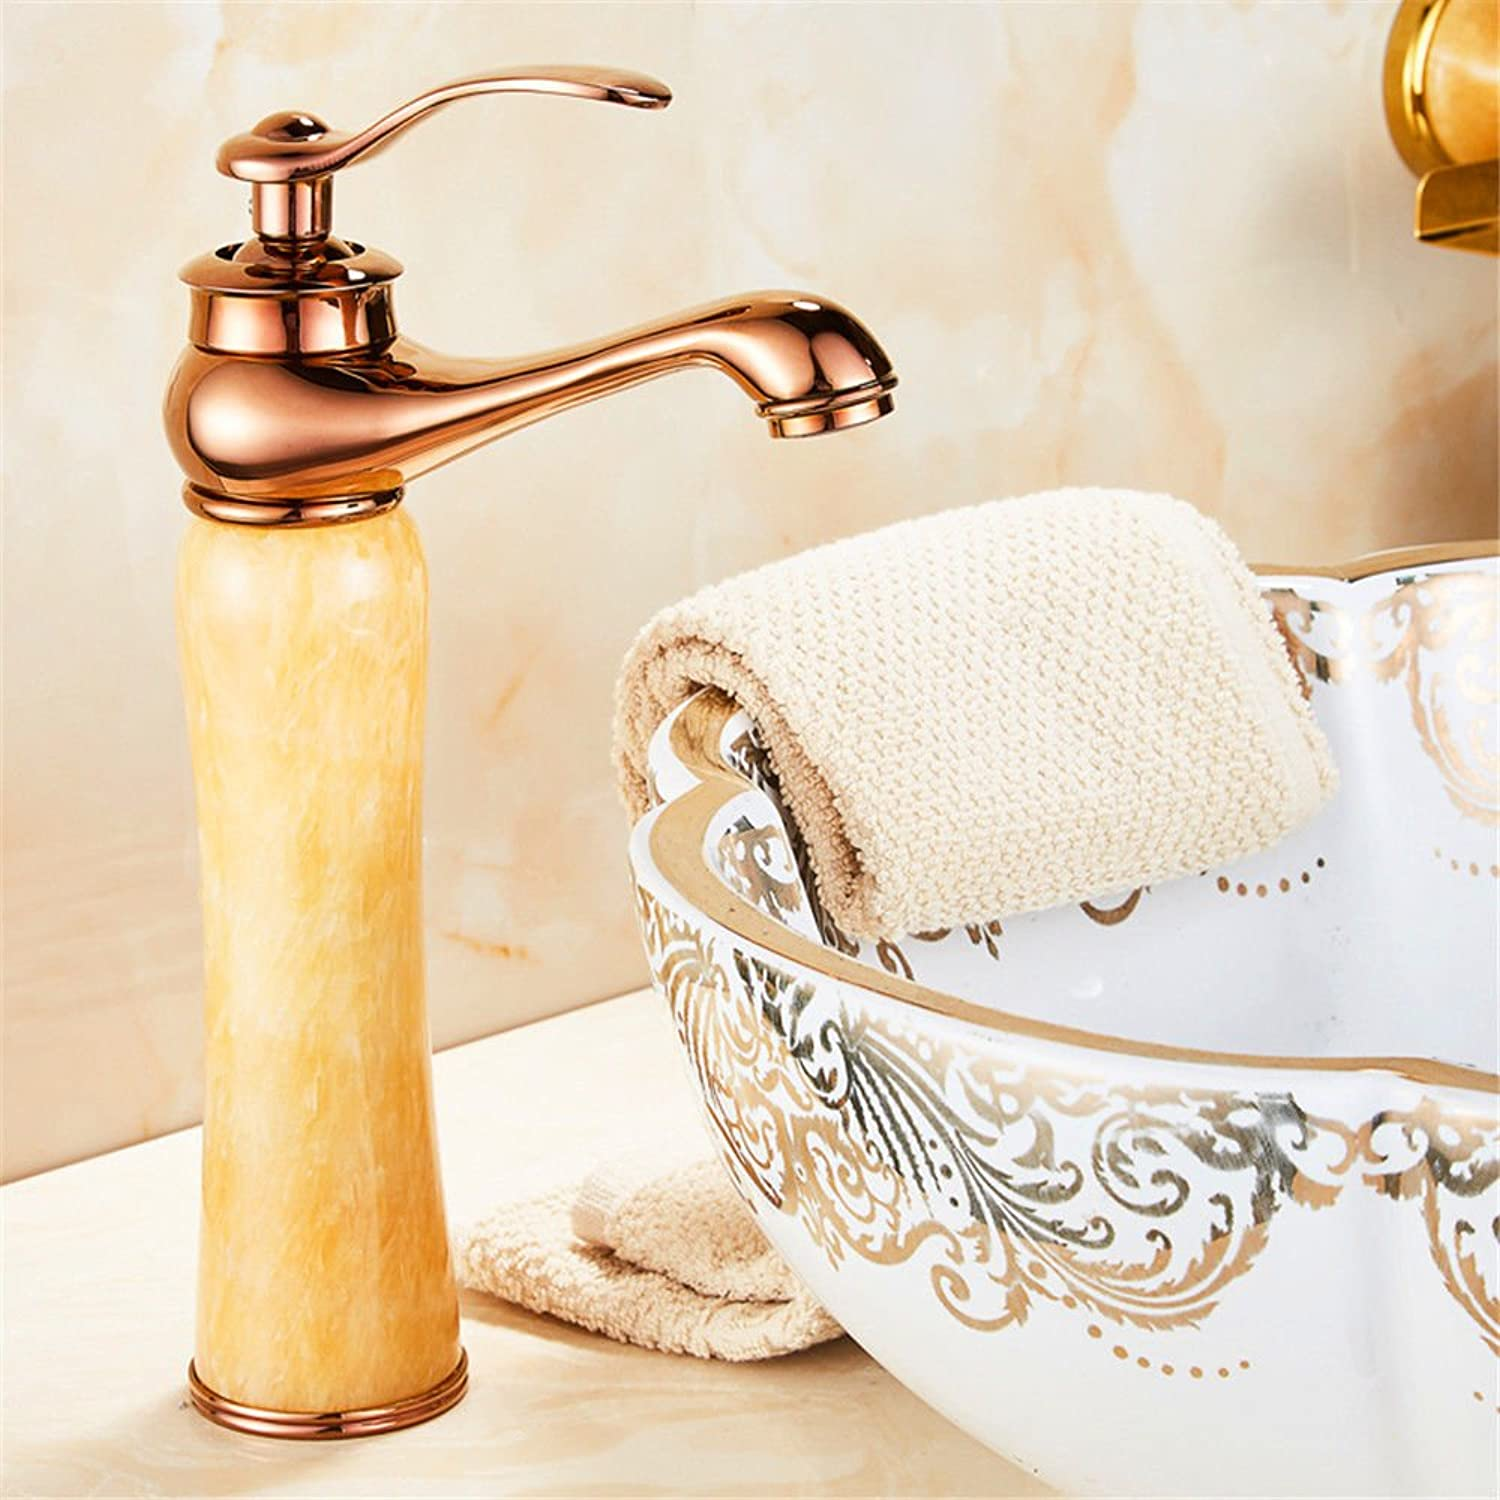 Gyps Faucet Bathroom Brass Tap Mixer Tap Basin Frame Pour Cold Water Tap Basin Basin Antique Tap gold Jade K Kitchen Tap